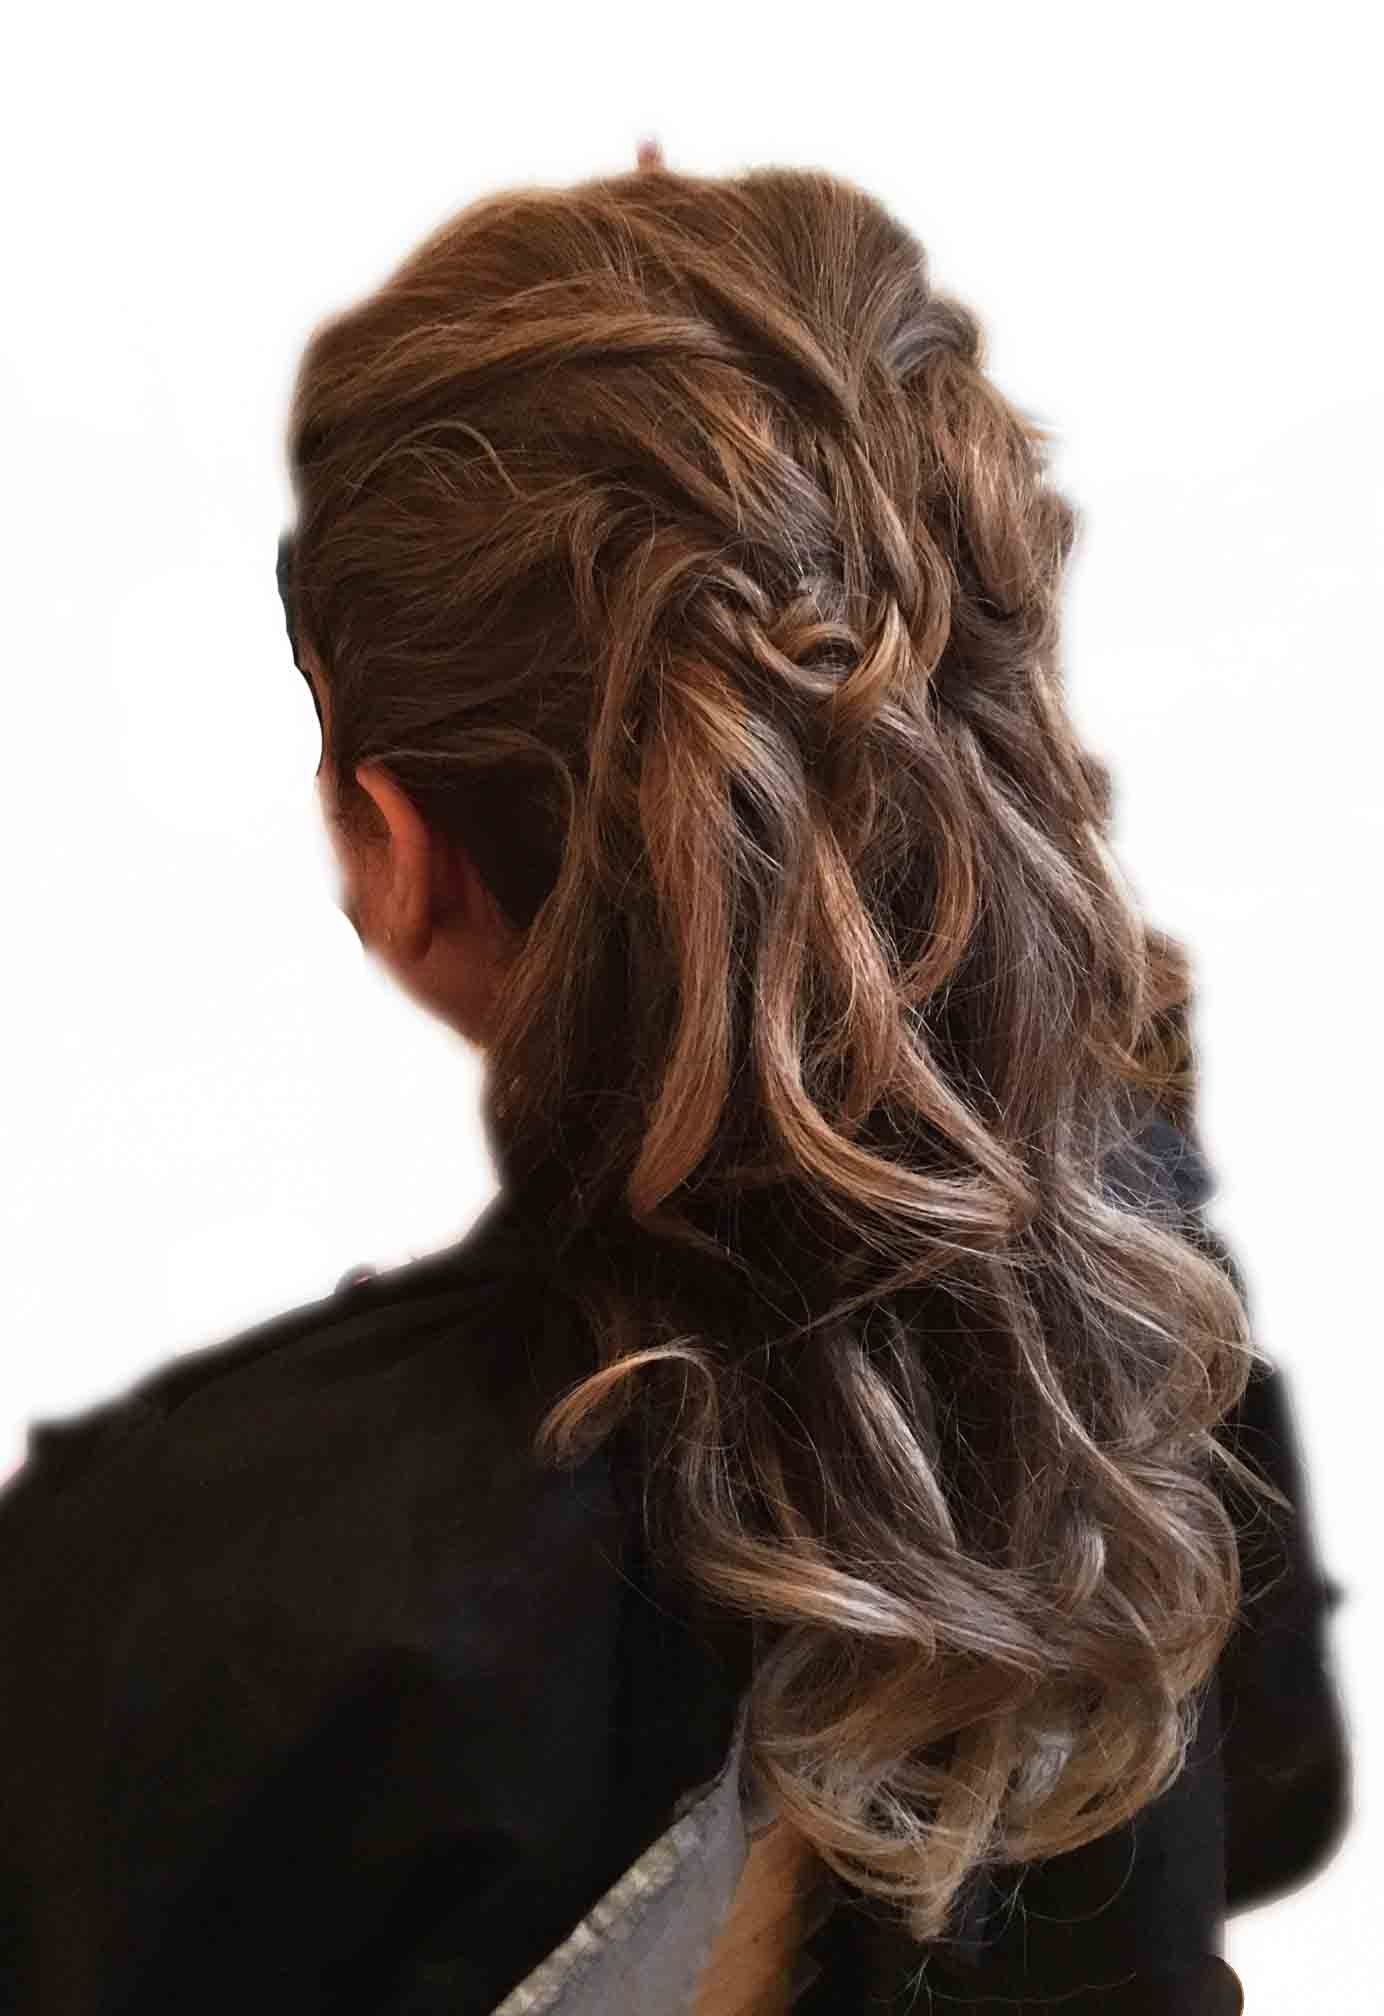 long hair romantic style with twists at ftmakeup london